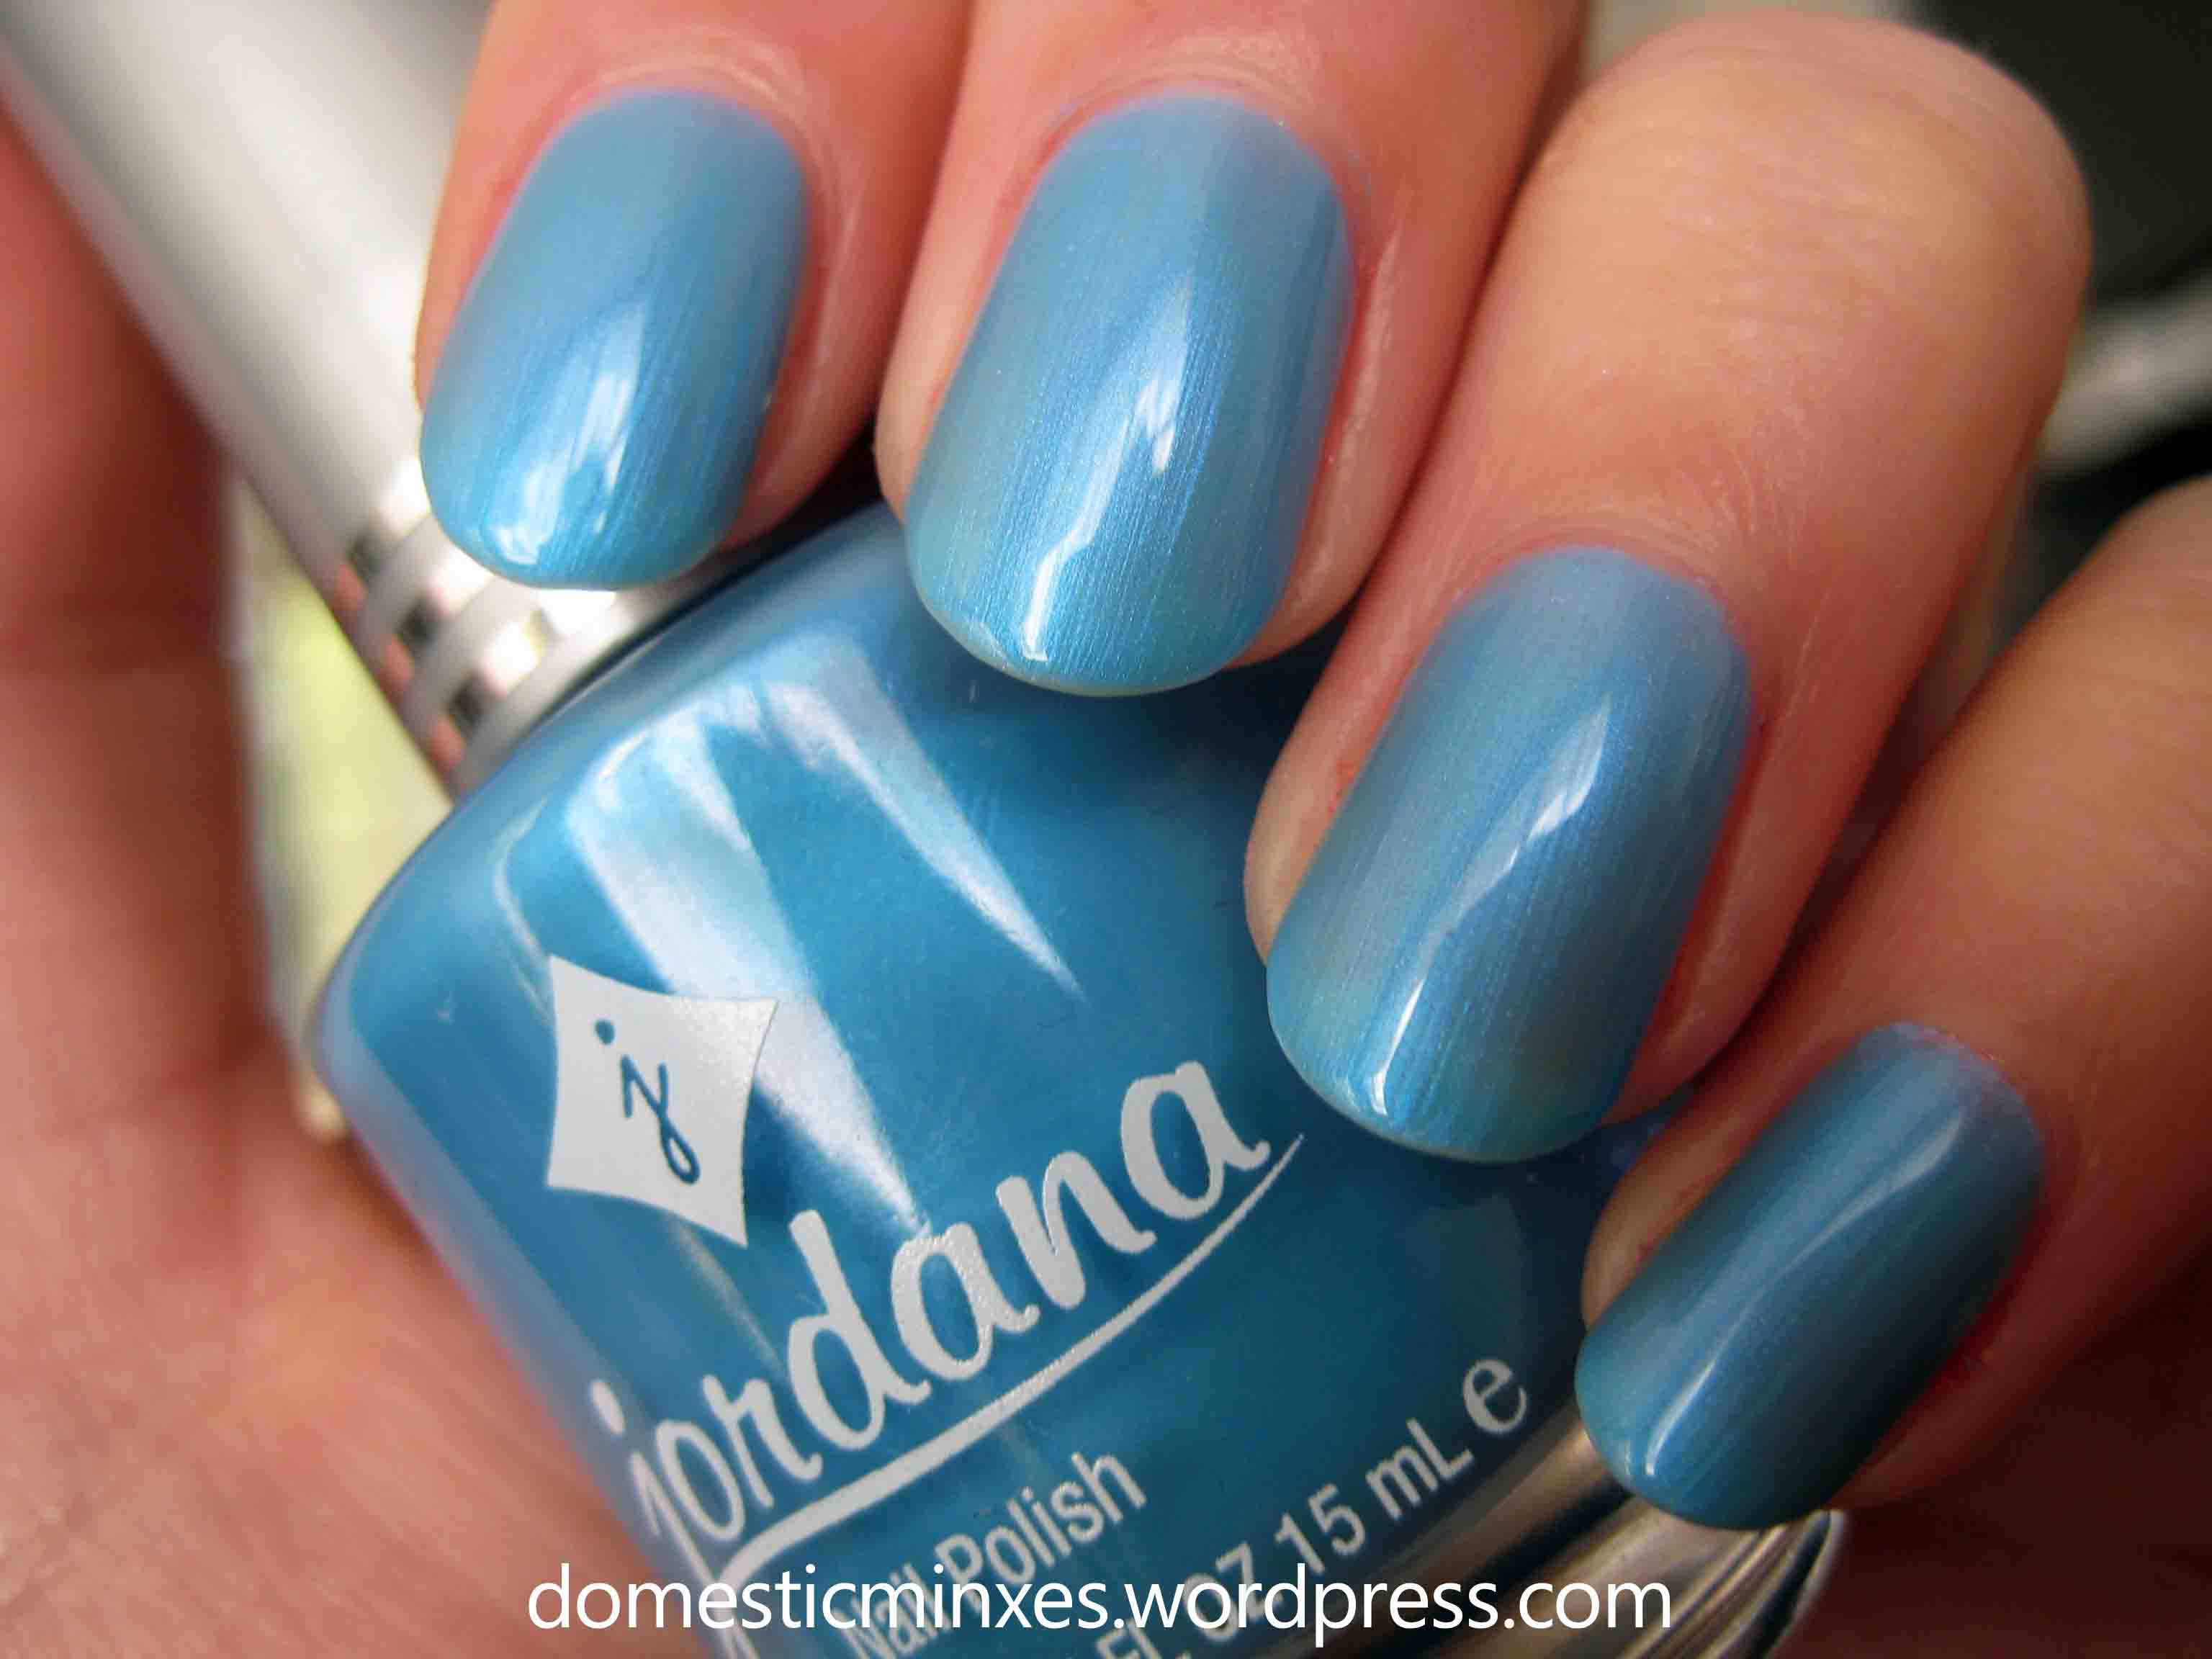 Jordana Nail Polish Swatches Domesticminxes